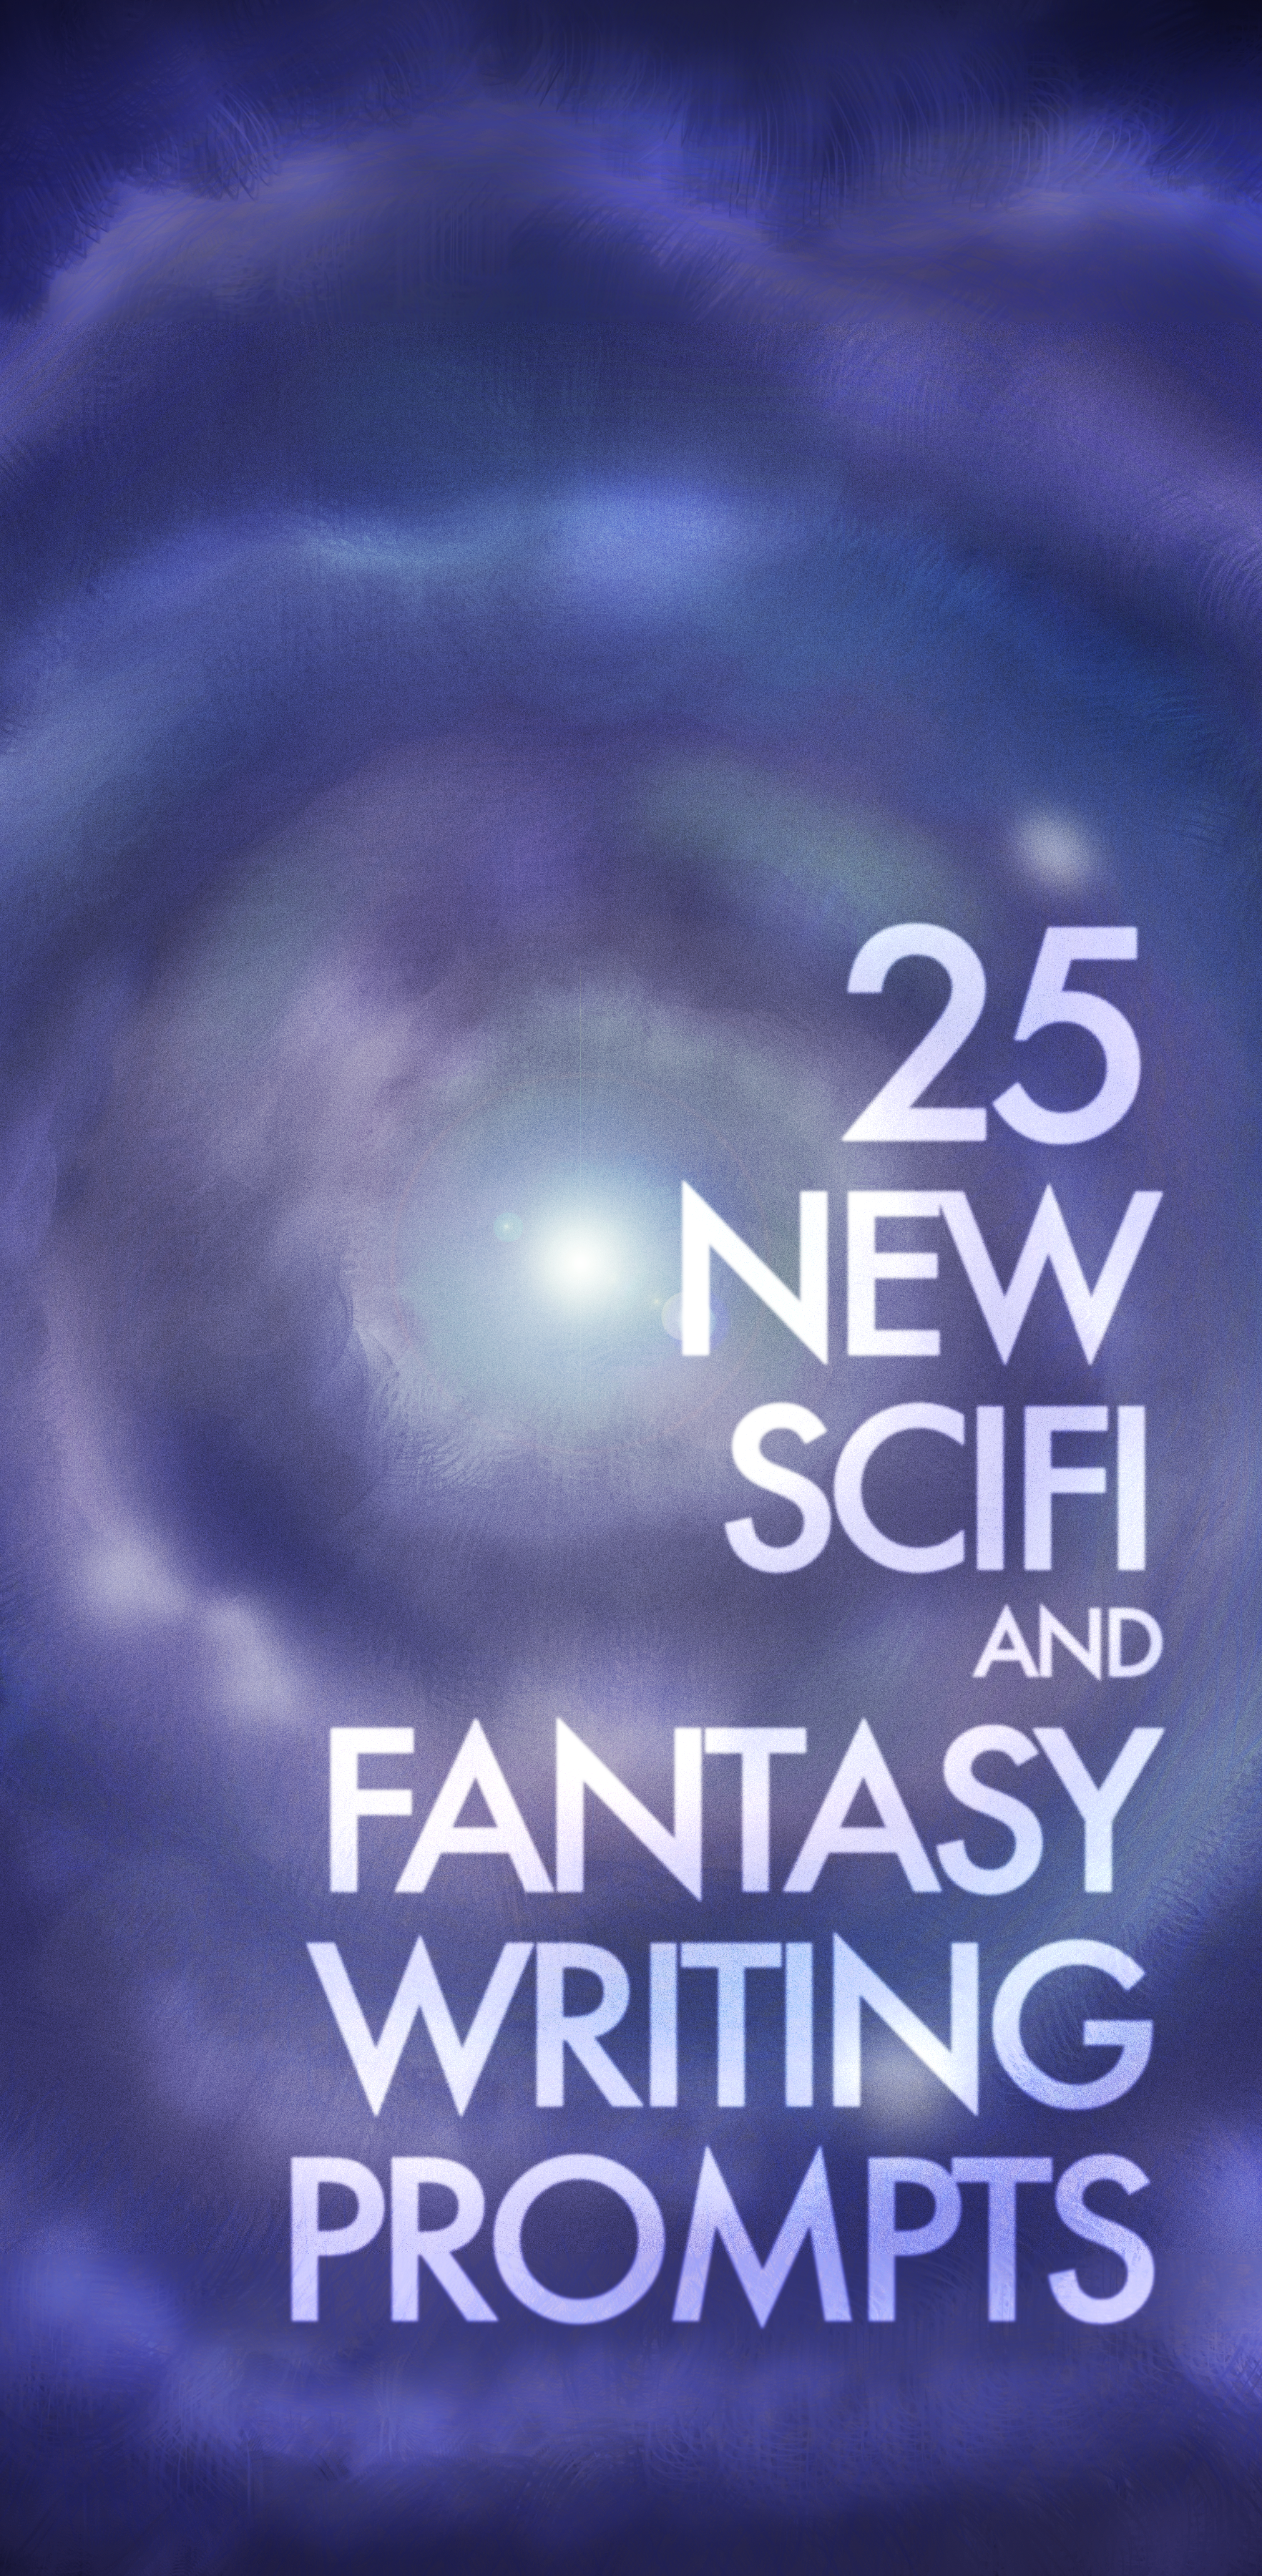 25 all new scifi and fantasy writing prompts — perfect for short stories,  short films, full blown novels and screenplays or even just some quick  flash ...